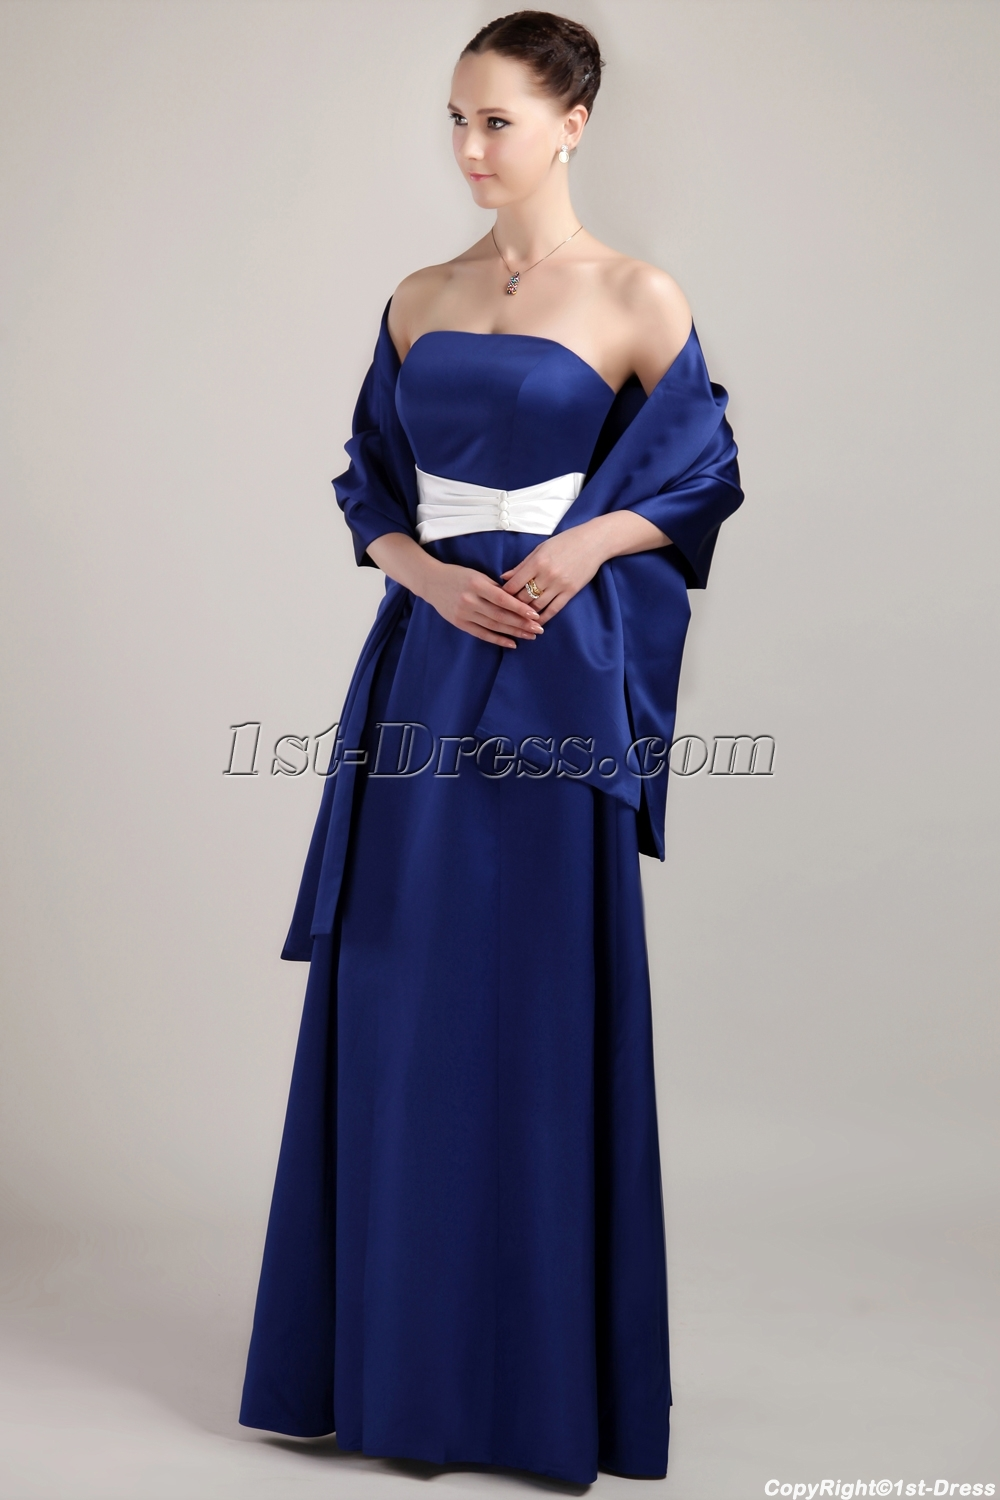 images/201304/big/Long-Blue-and-White-Pretty-Dress-with-Shawl-IMG_3089-1079-b-1-1366273532.jpg